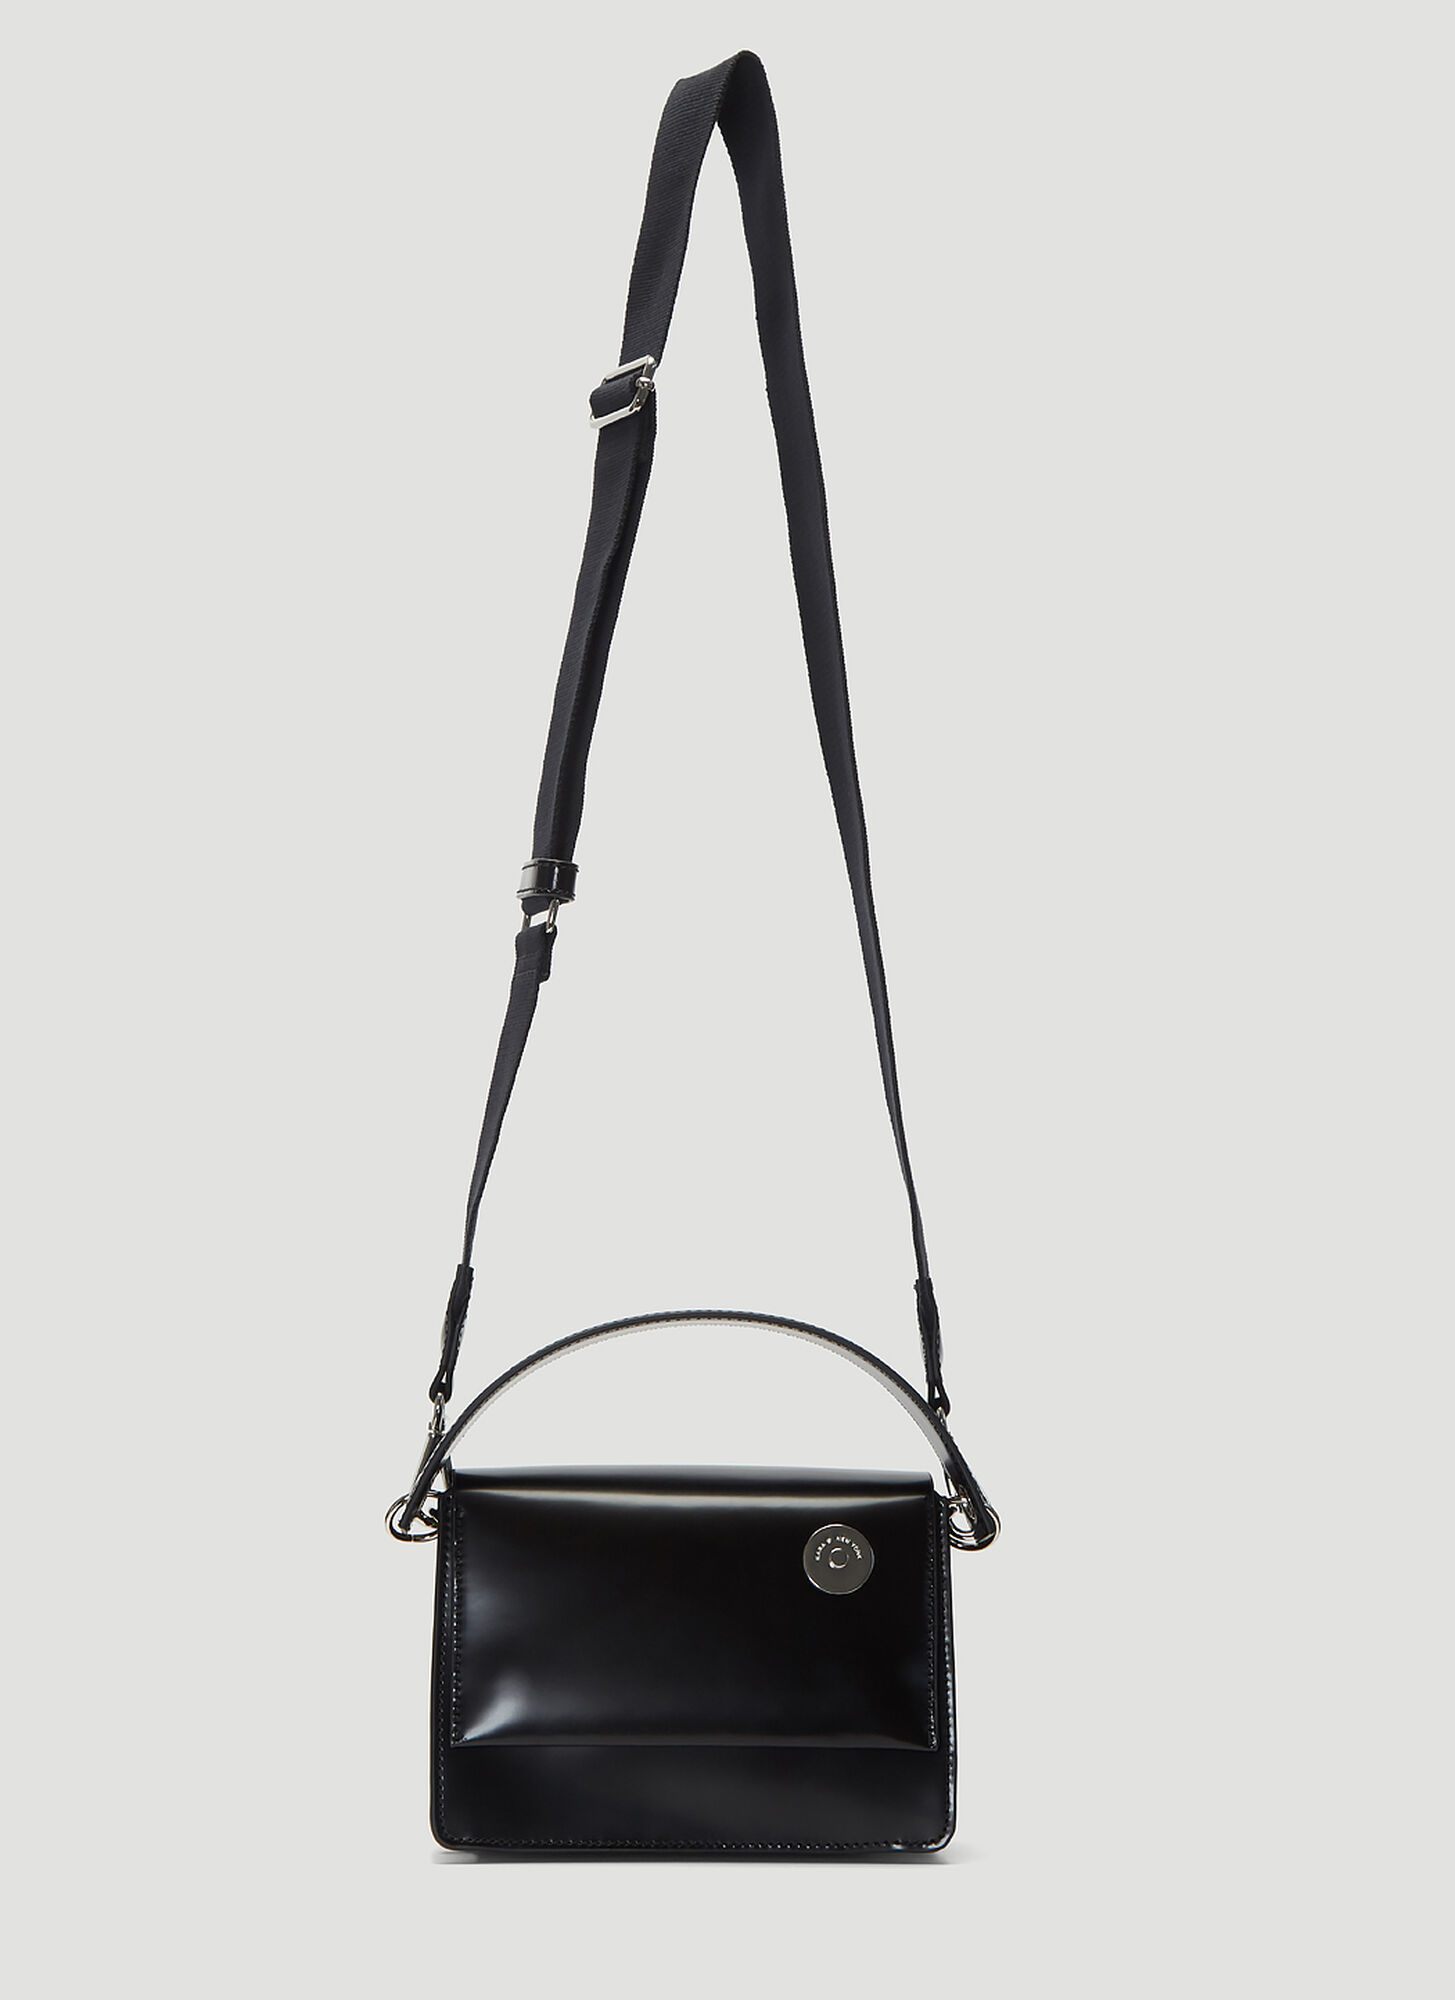 Kara Baby Pinch Shoulder Bag in Black